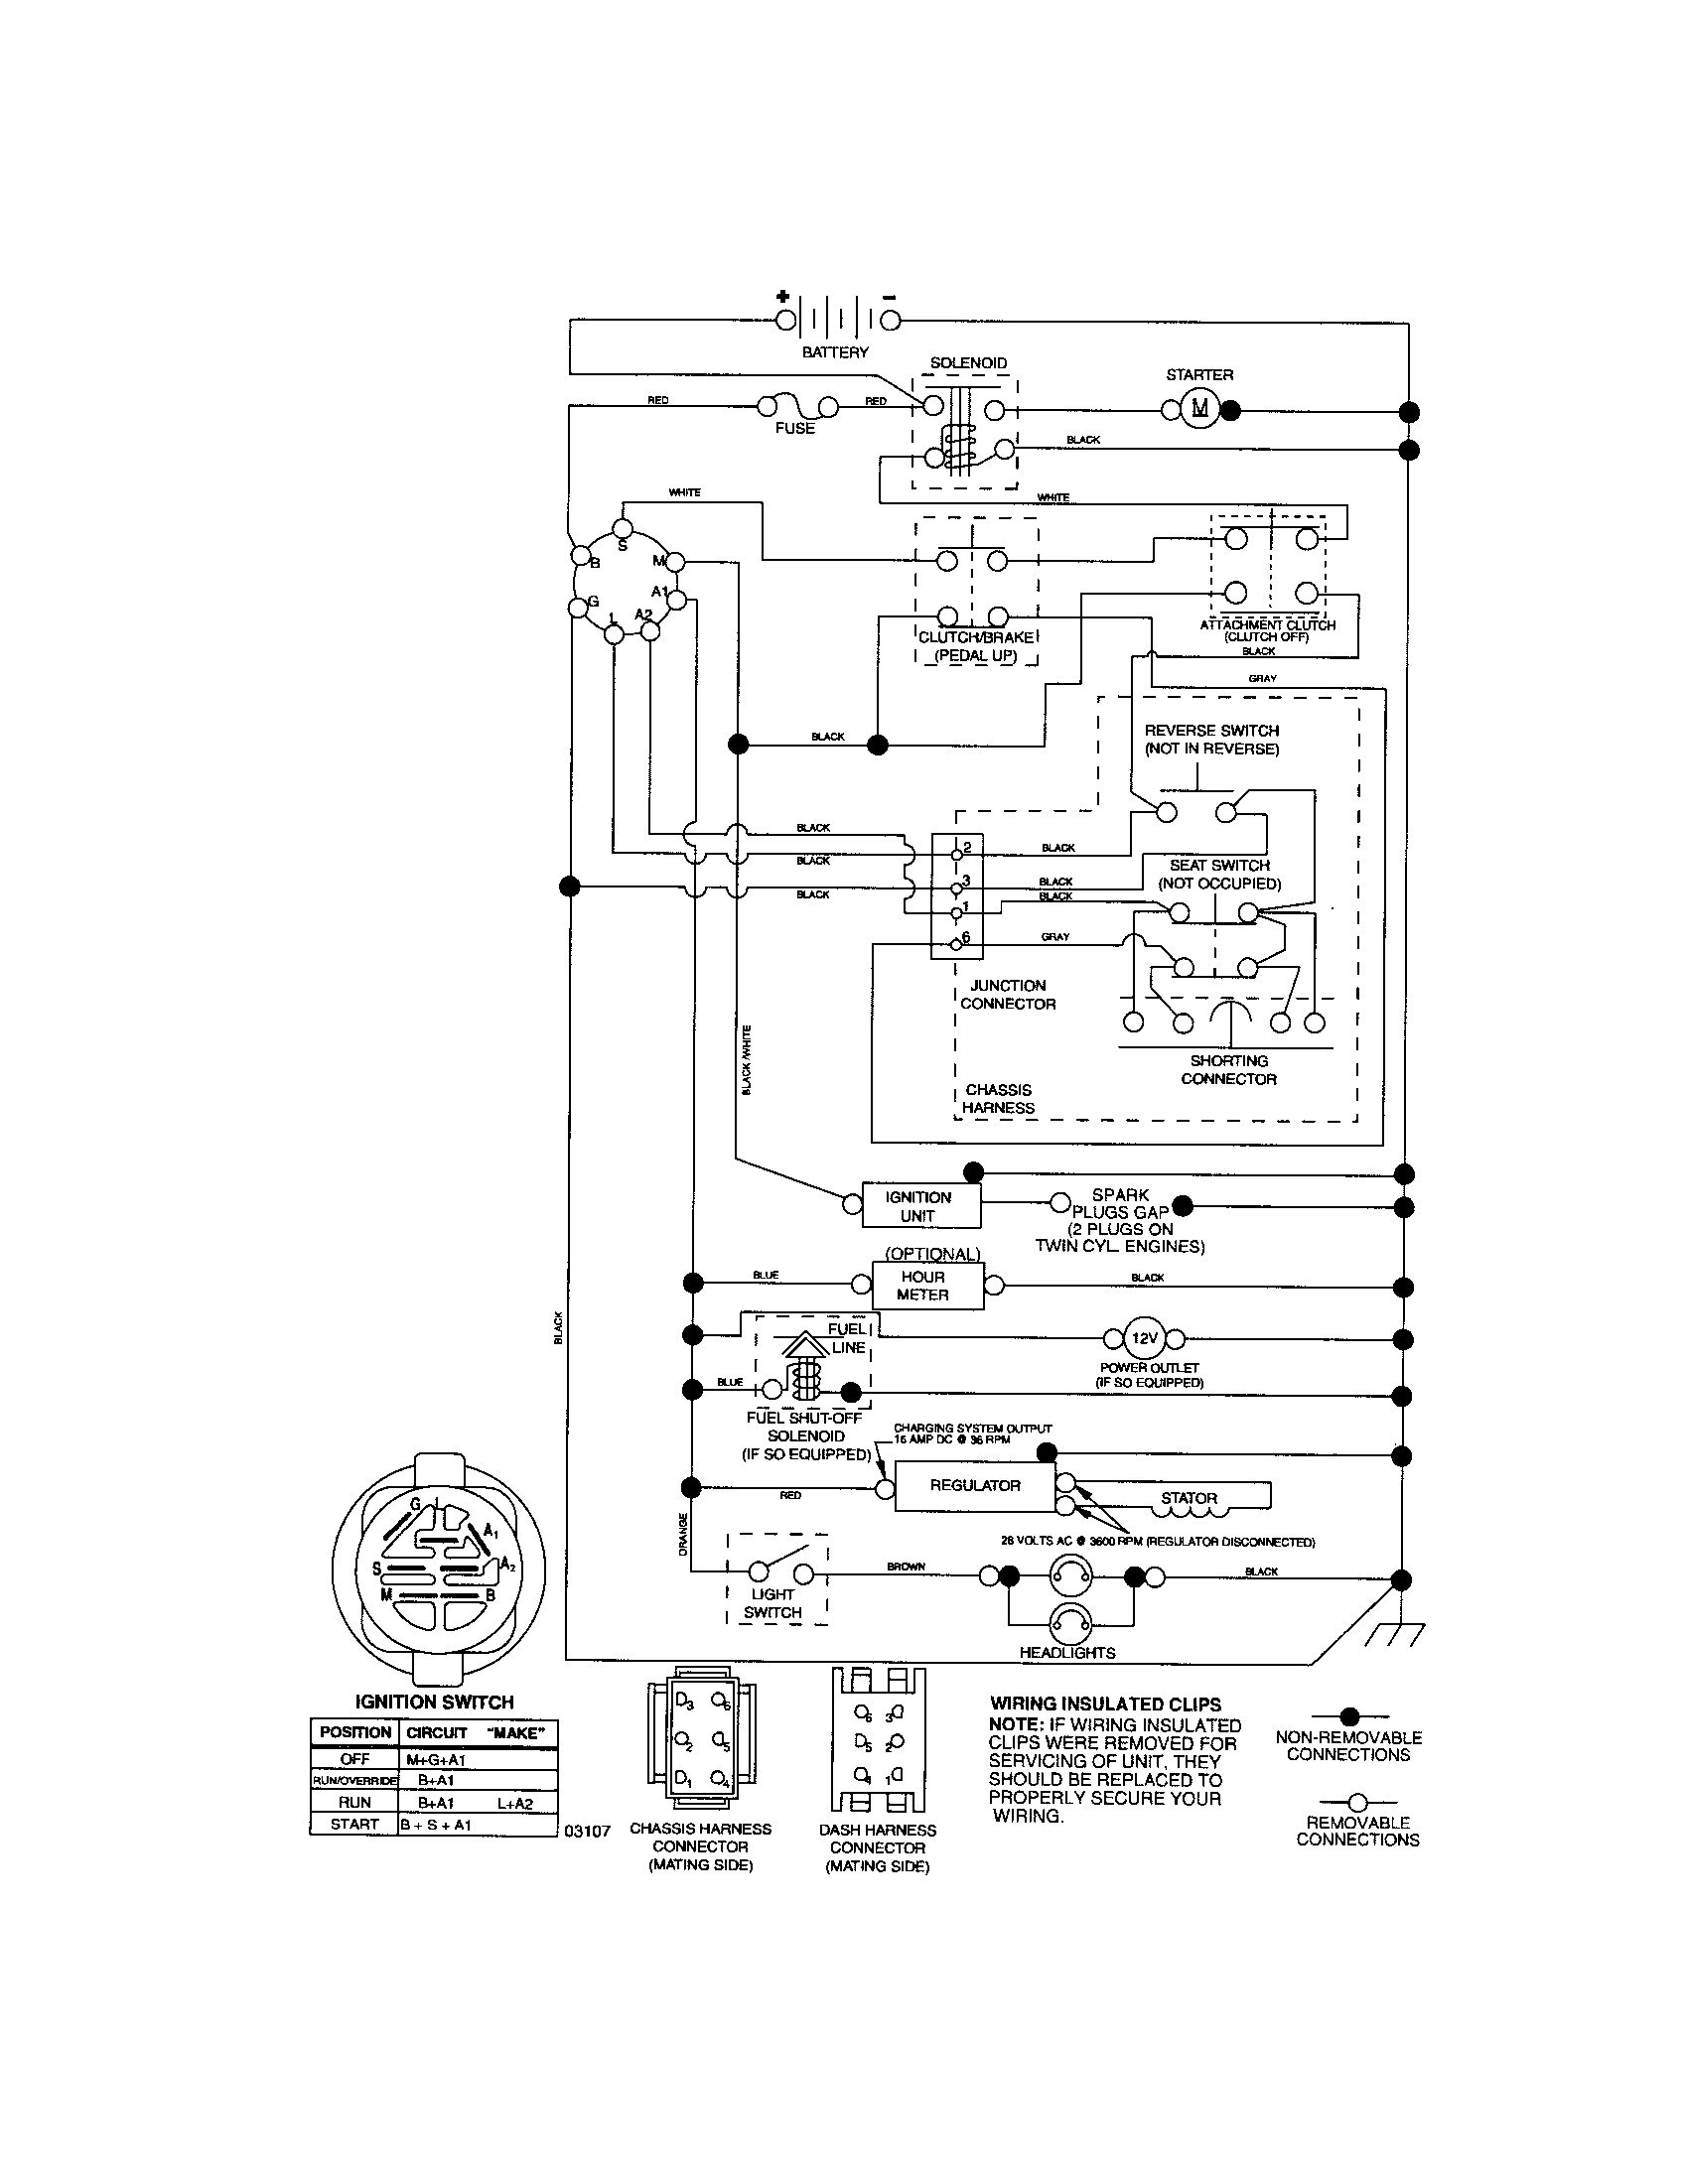 Bolens 13am762f765 Wiring Diagram Sample